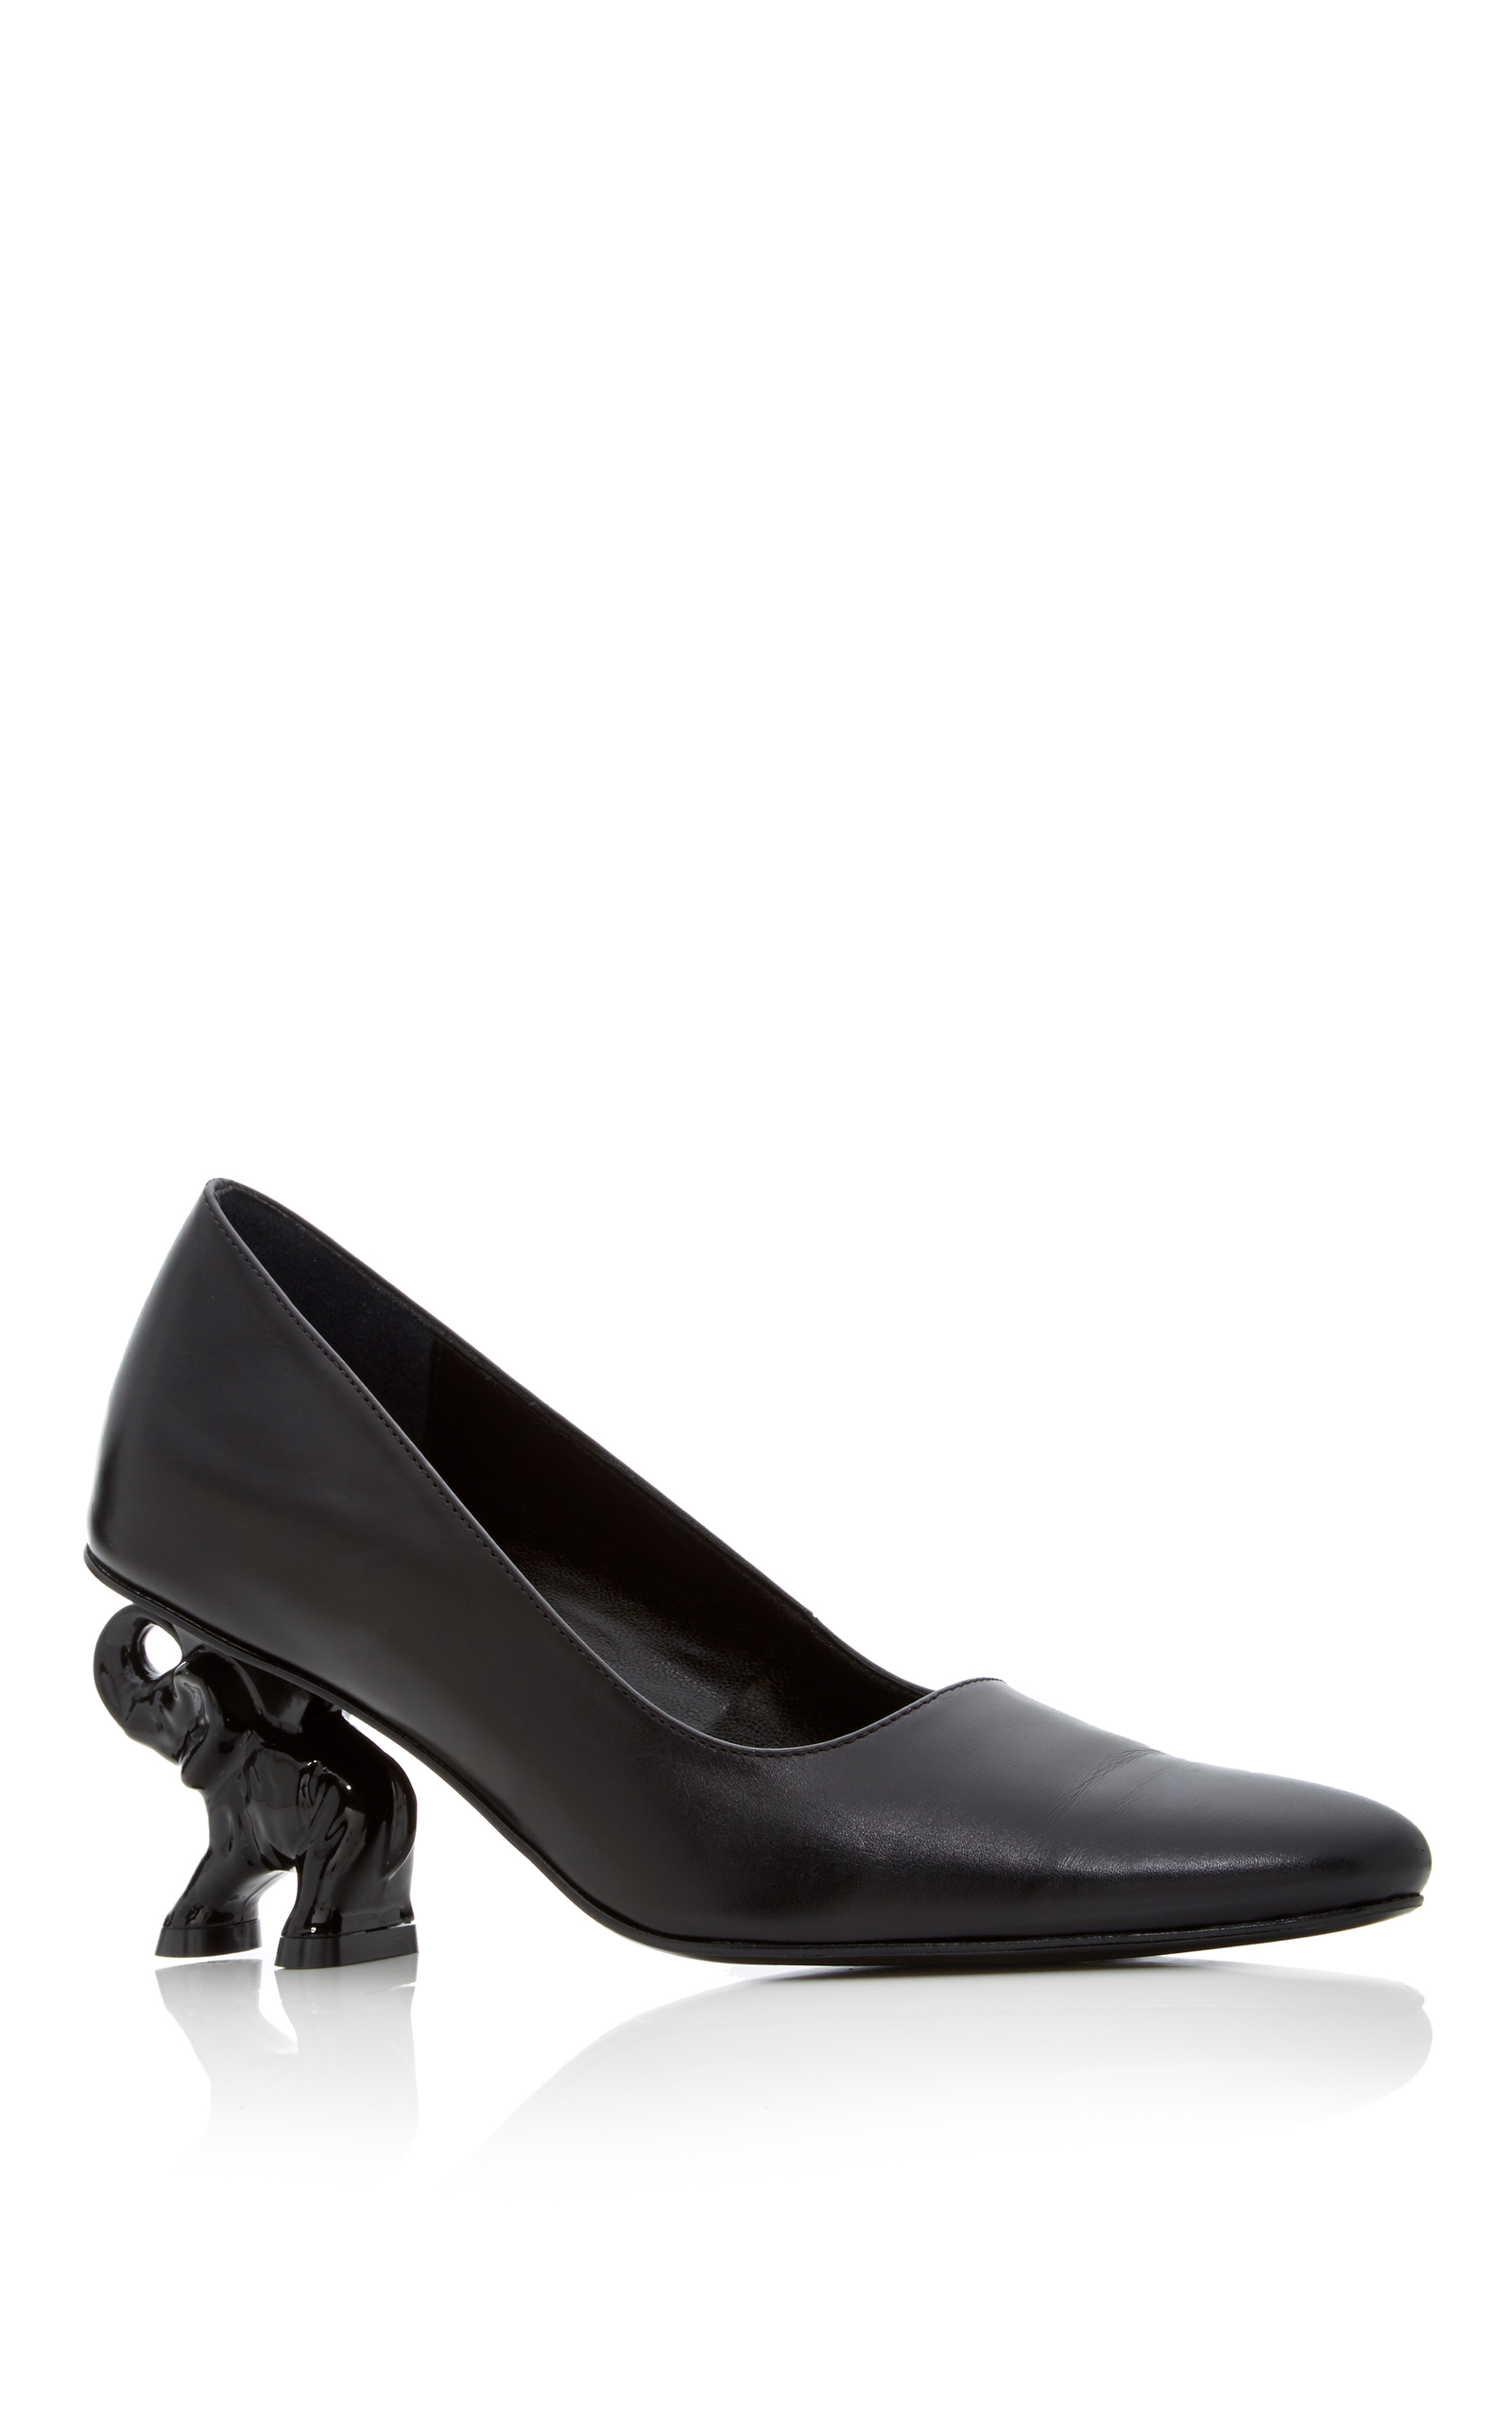 Dorateymur elephant heel mules clearance pay with paypal EmQrU7ueXq